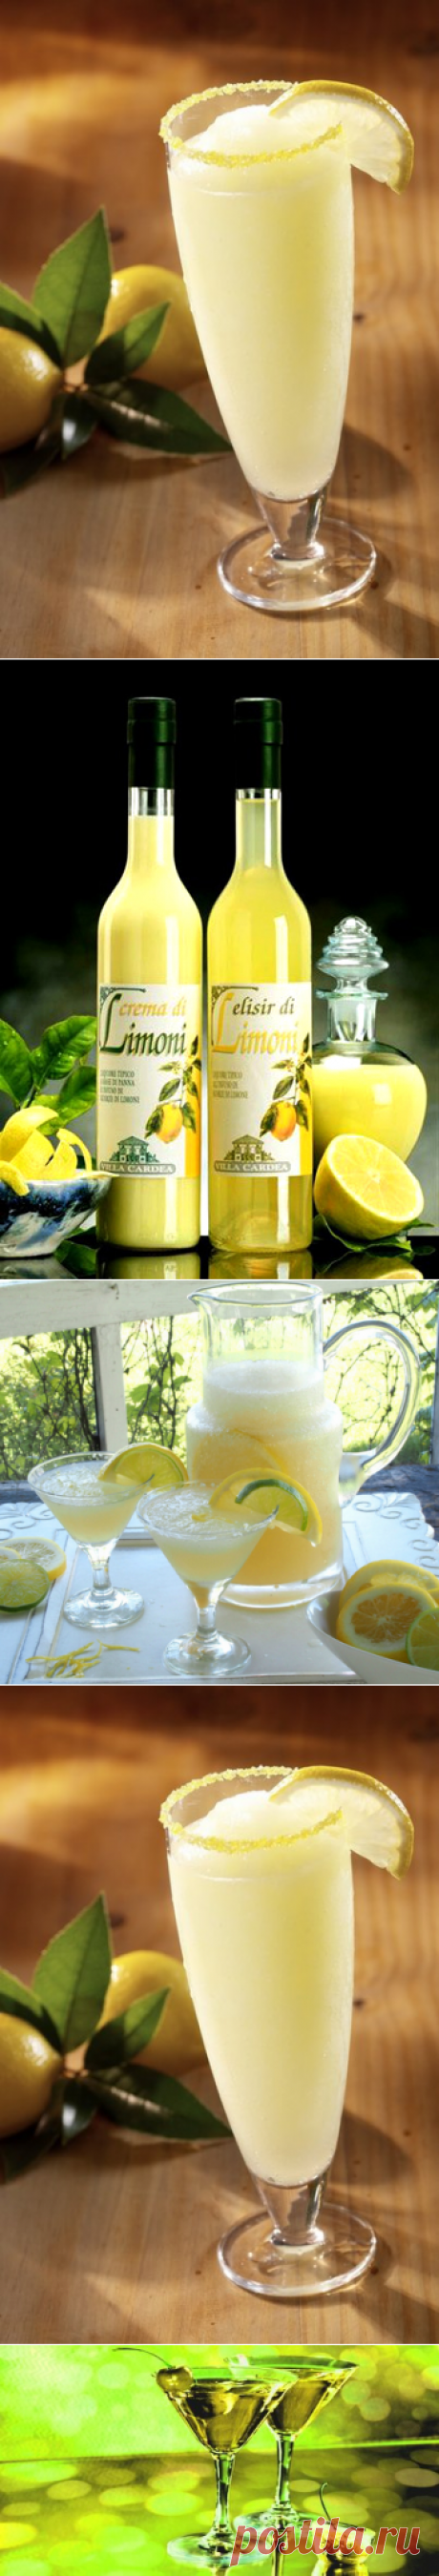 We will make liqueur of Limoncello -